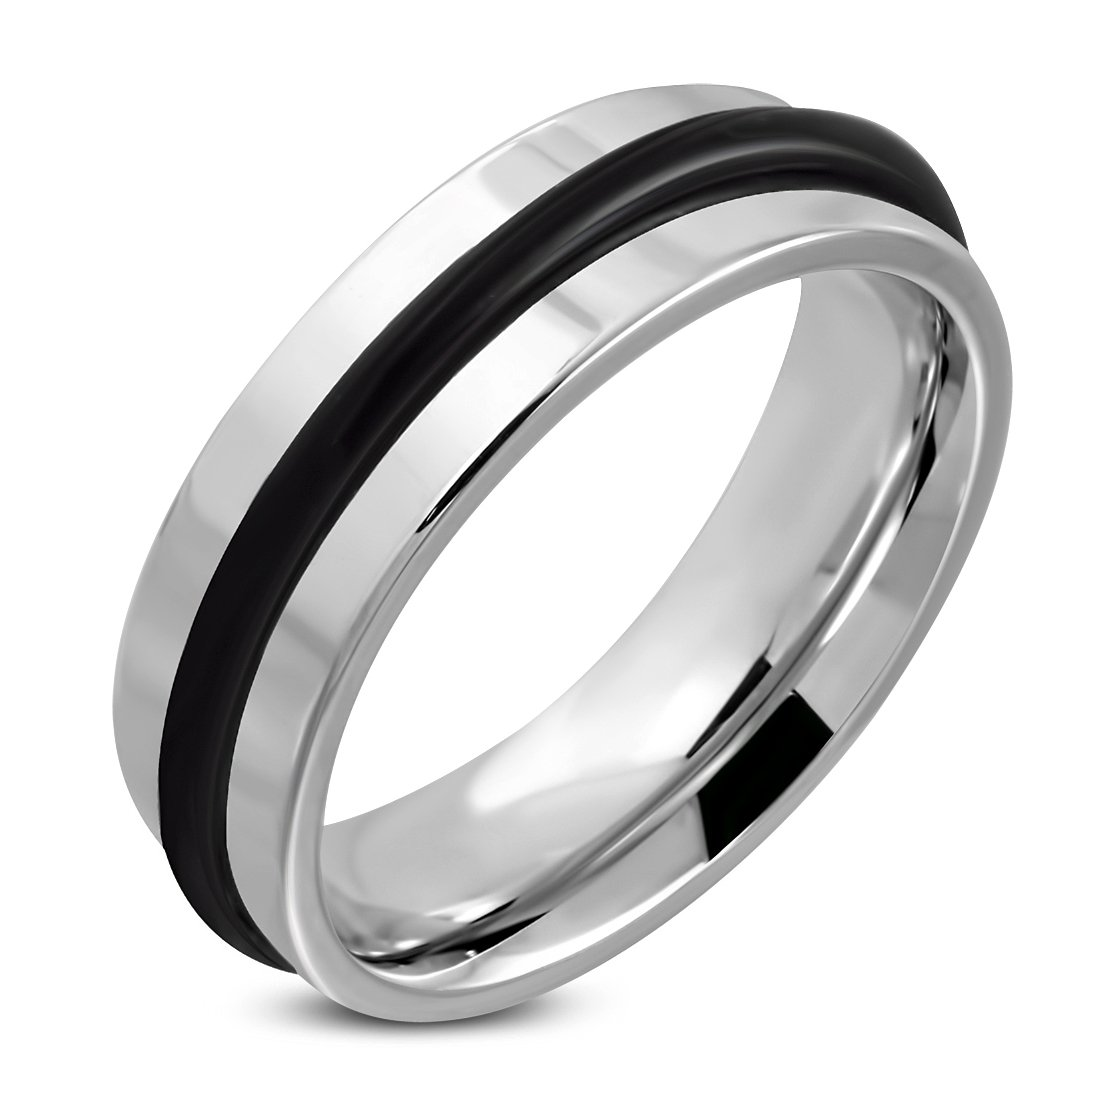 Stainless Steel Comfort Fit Half-Round Band Ring with O-Ring